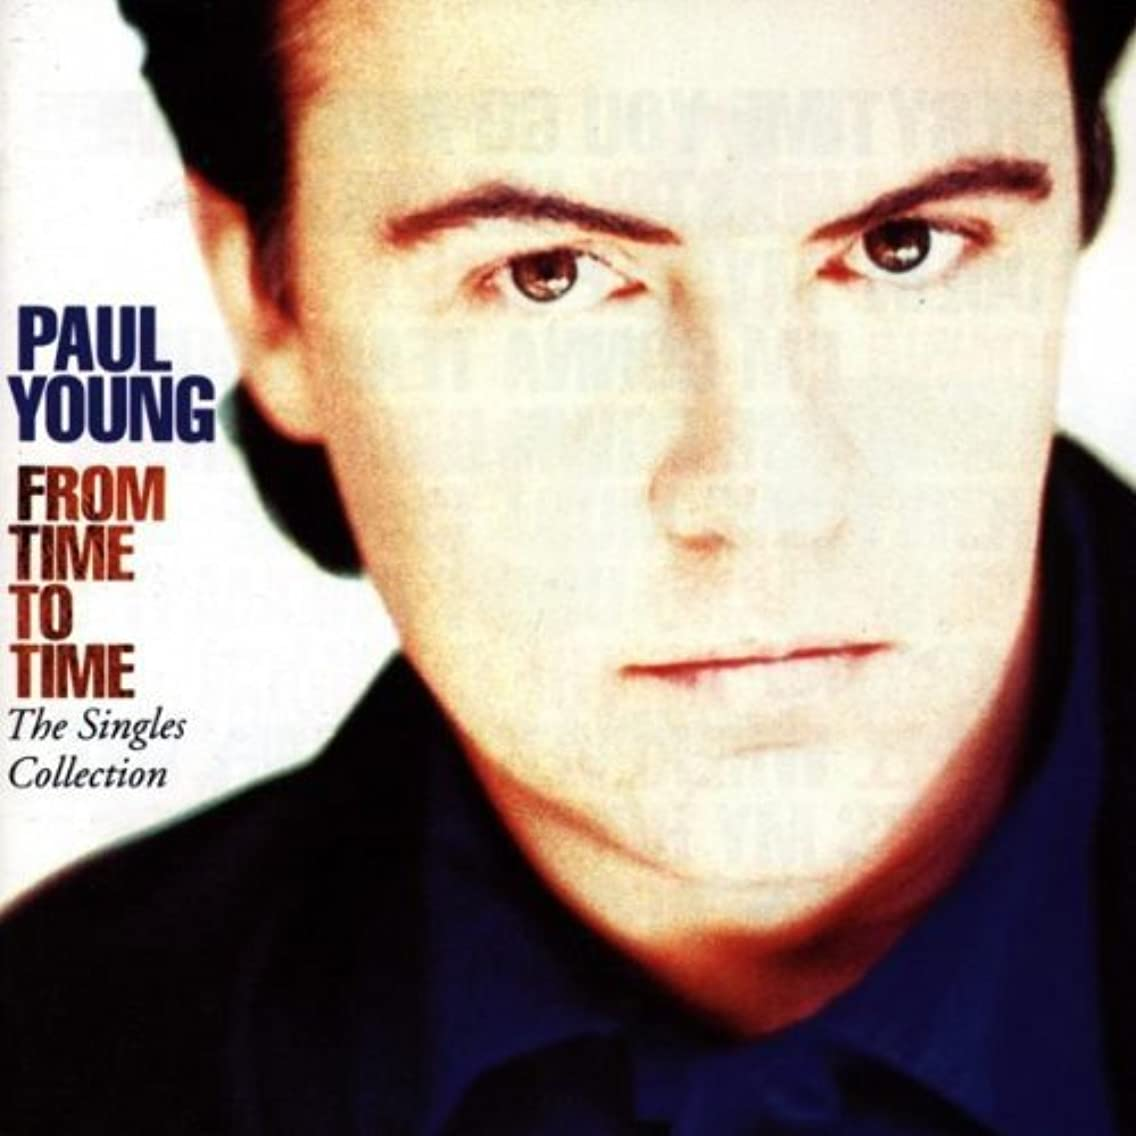 From Time To Time - The Singles Coll Ection